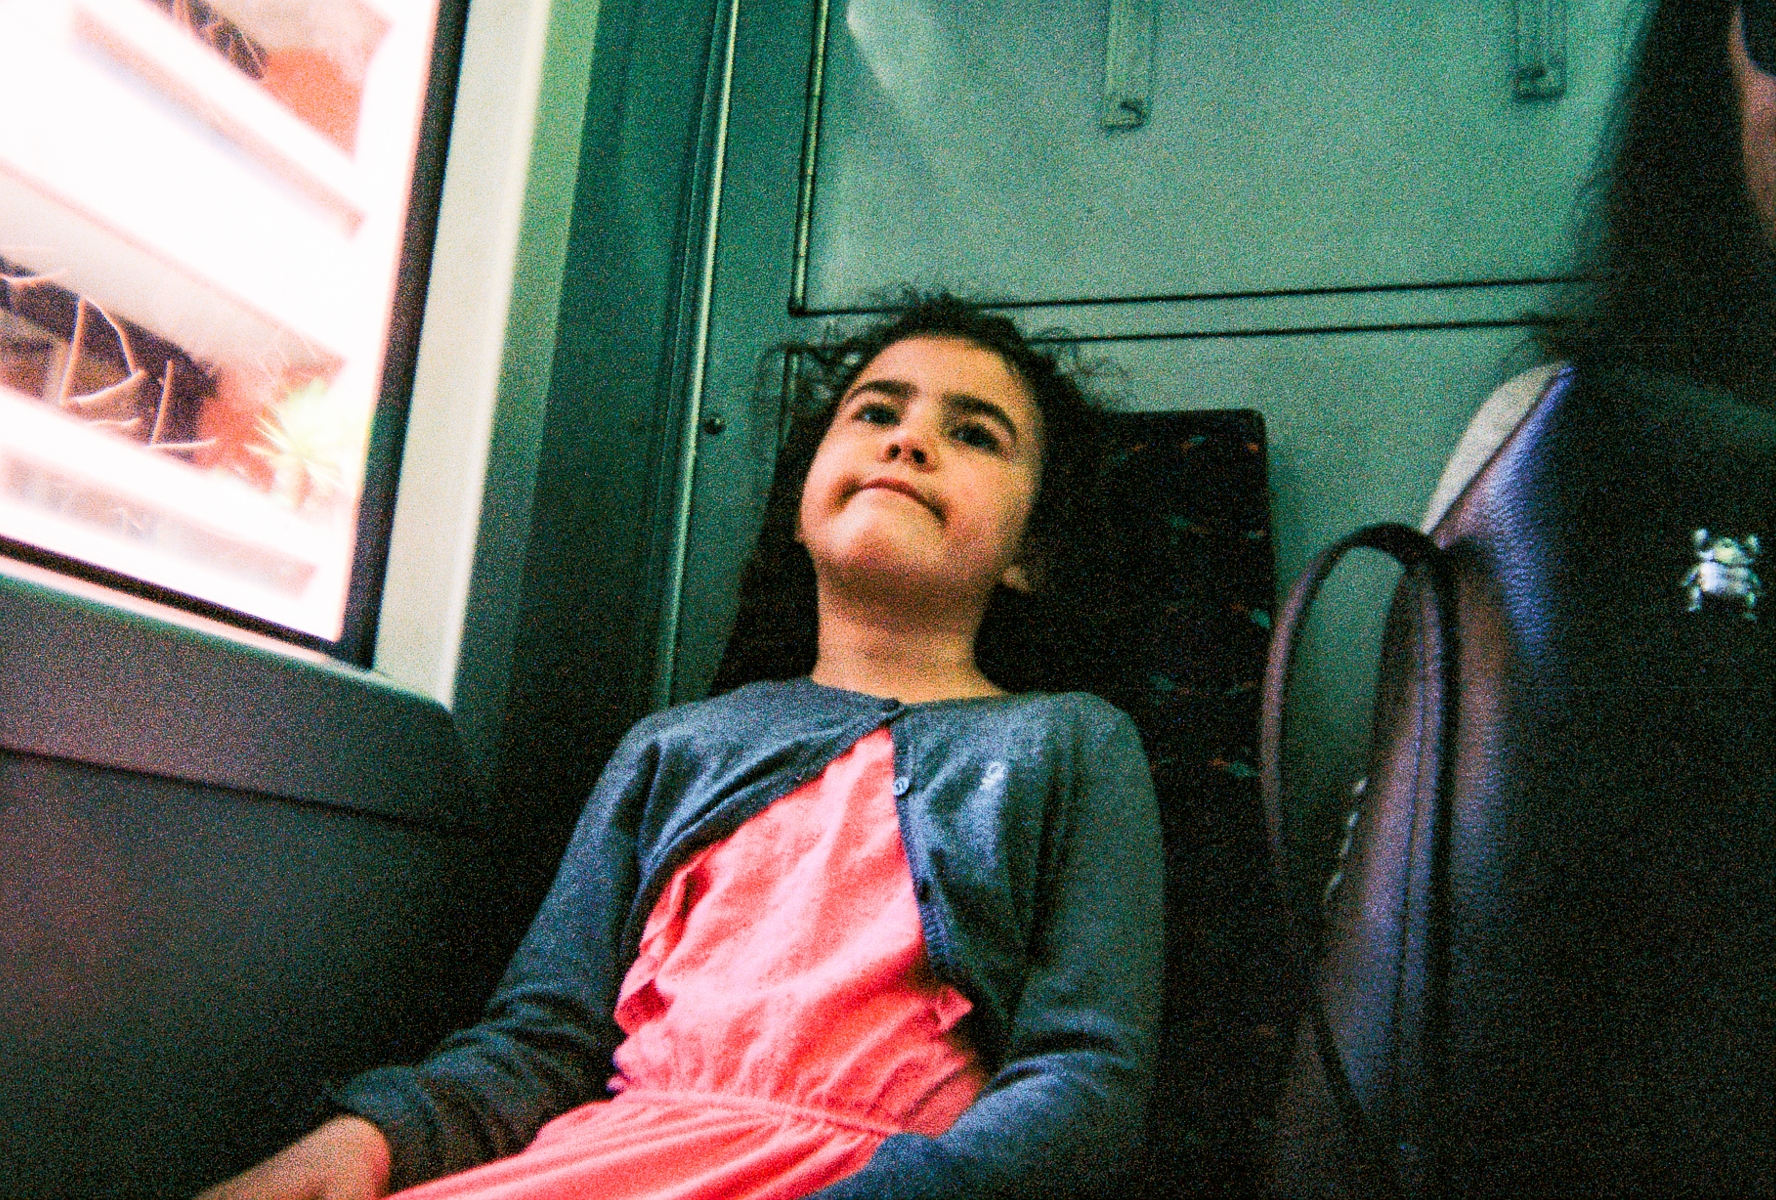 girl-on-the-train_005